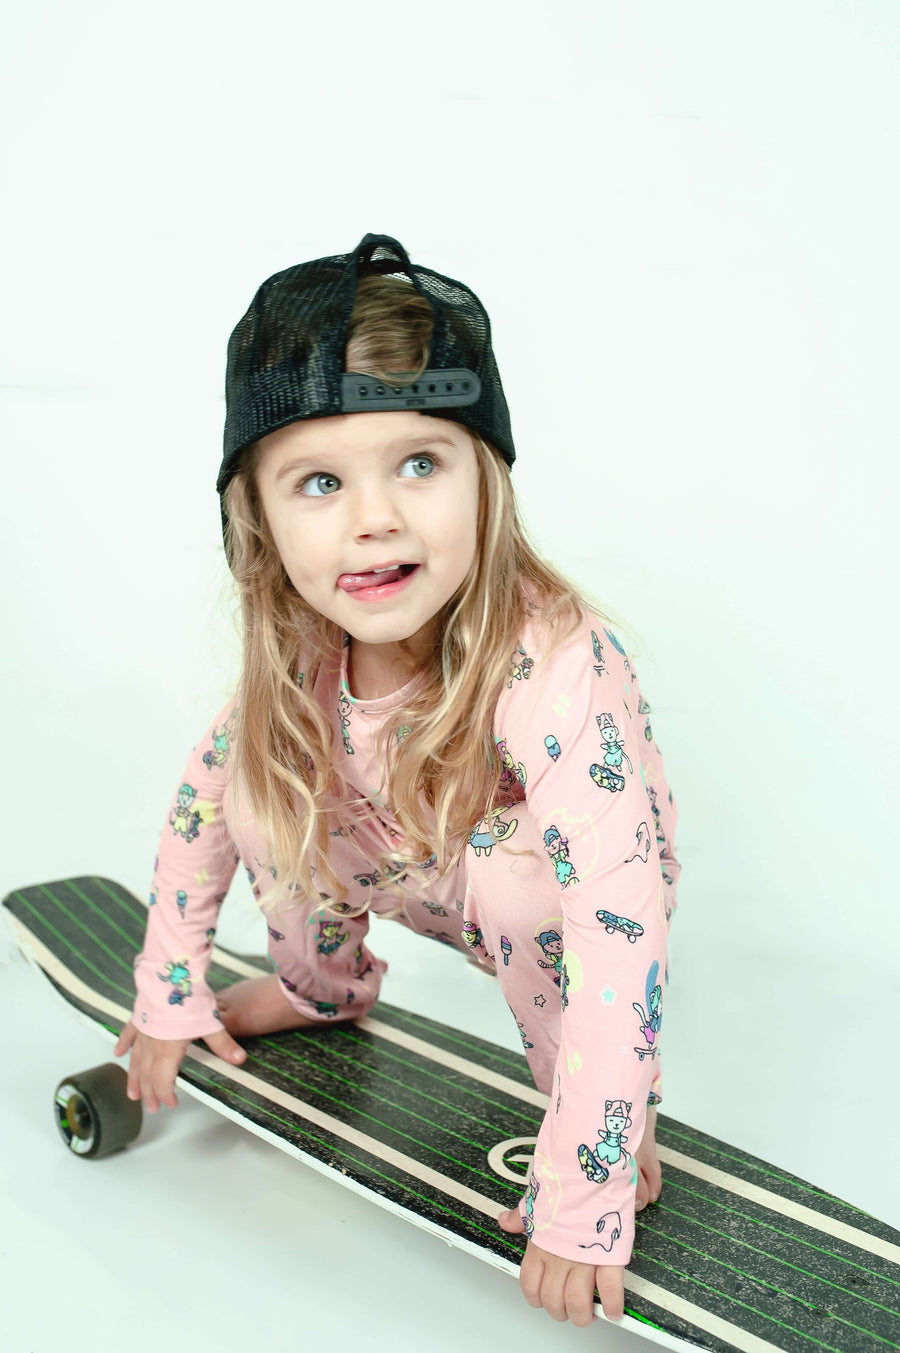 Limited Edition! Skater Kitty Bamboo Kids Pajamas